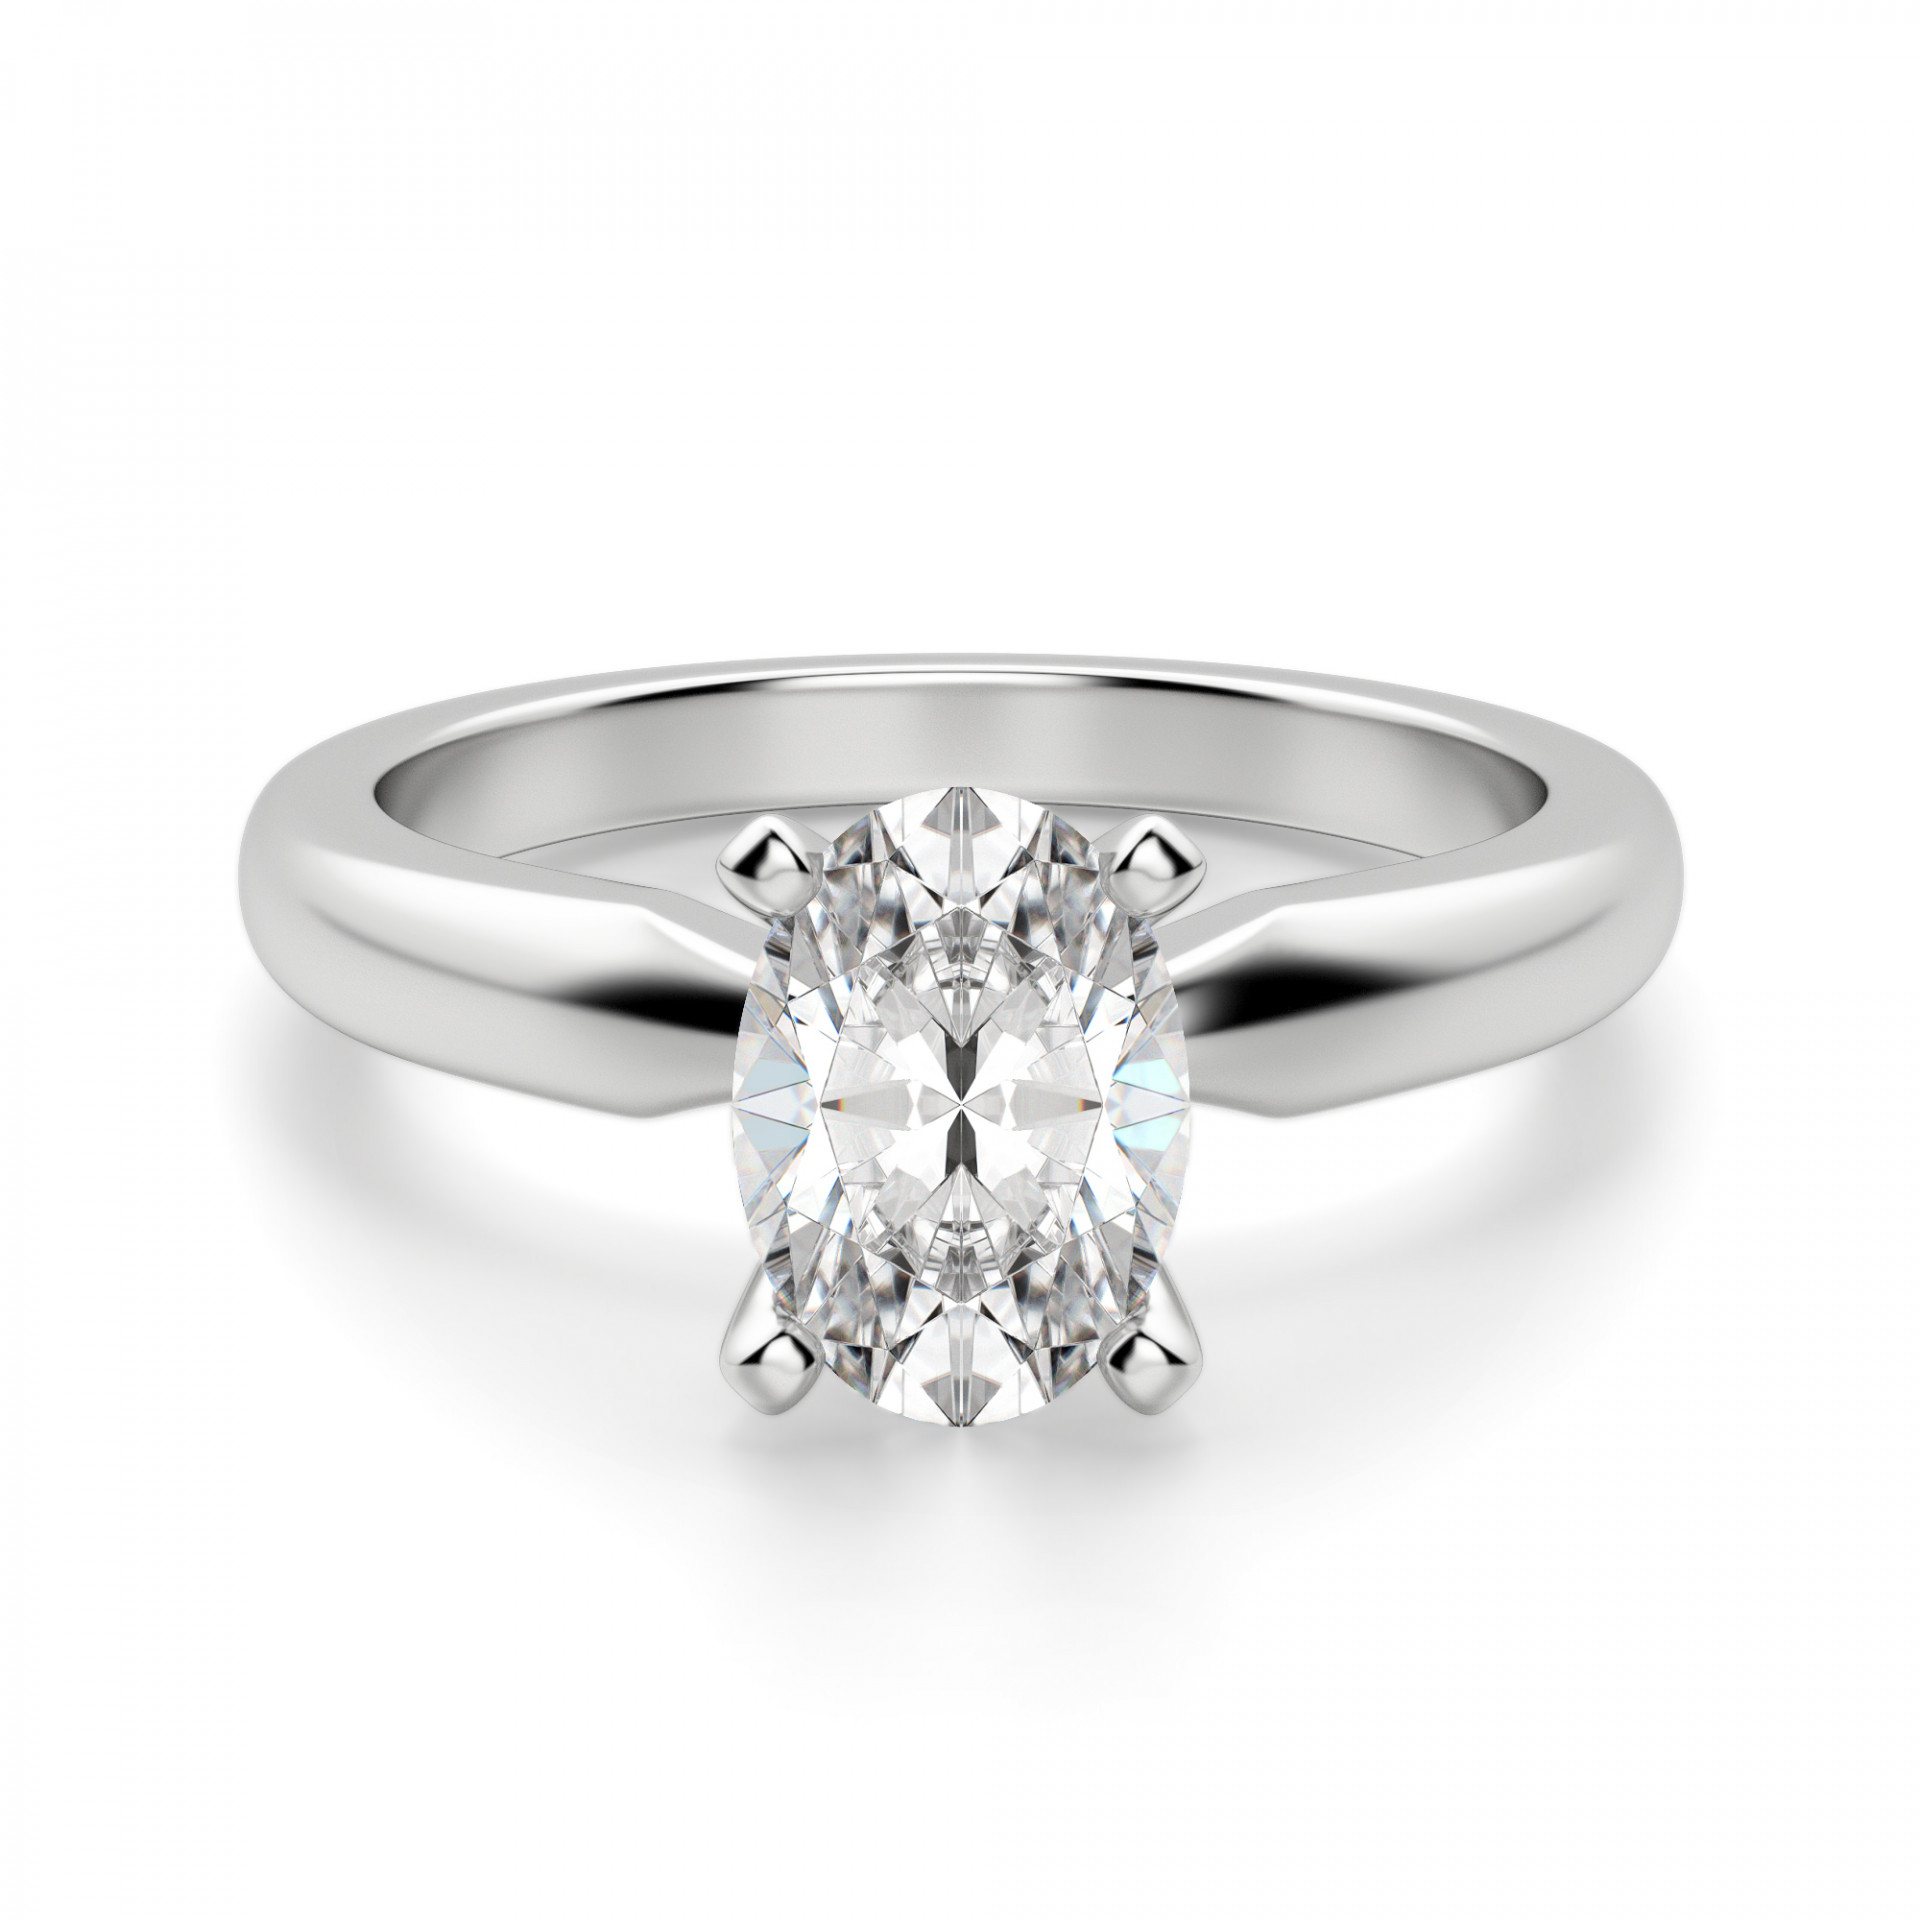 Tiffany Style Solitaire Oval Cut Engagement Ring For Oval Shaped Engagement Rings (View 24 of 25)